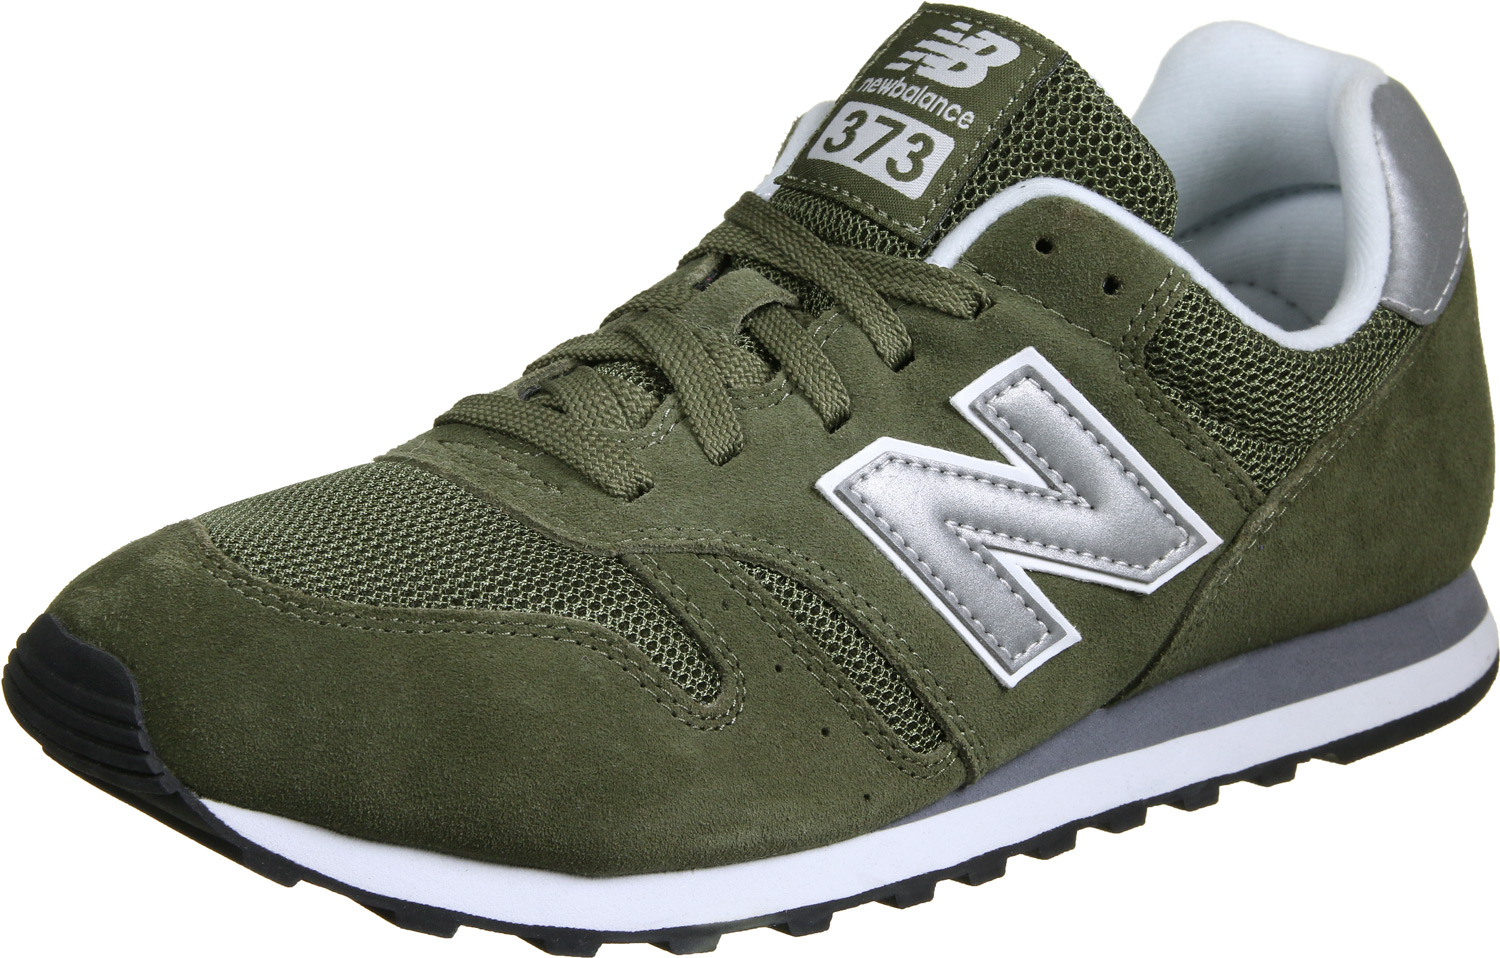 new balance ml373 olive Online Shopping mall | Find the best ...